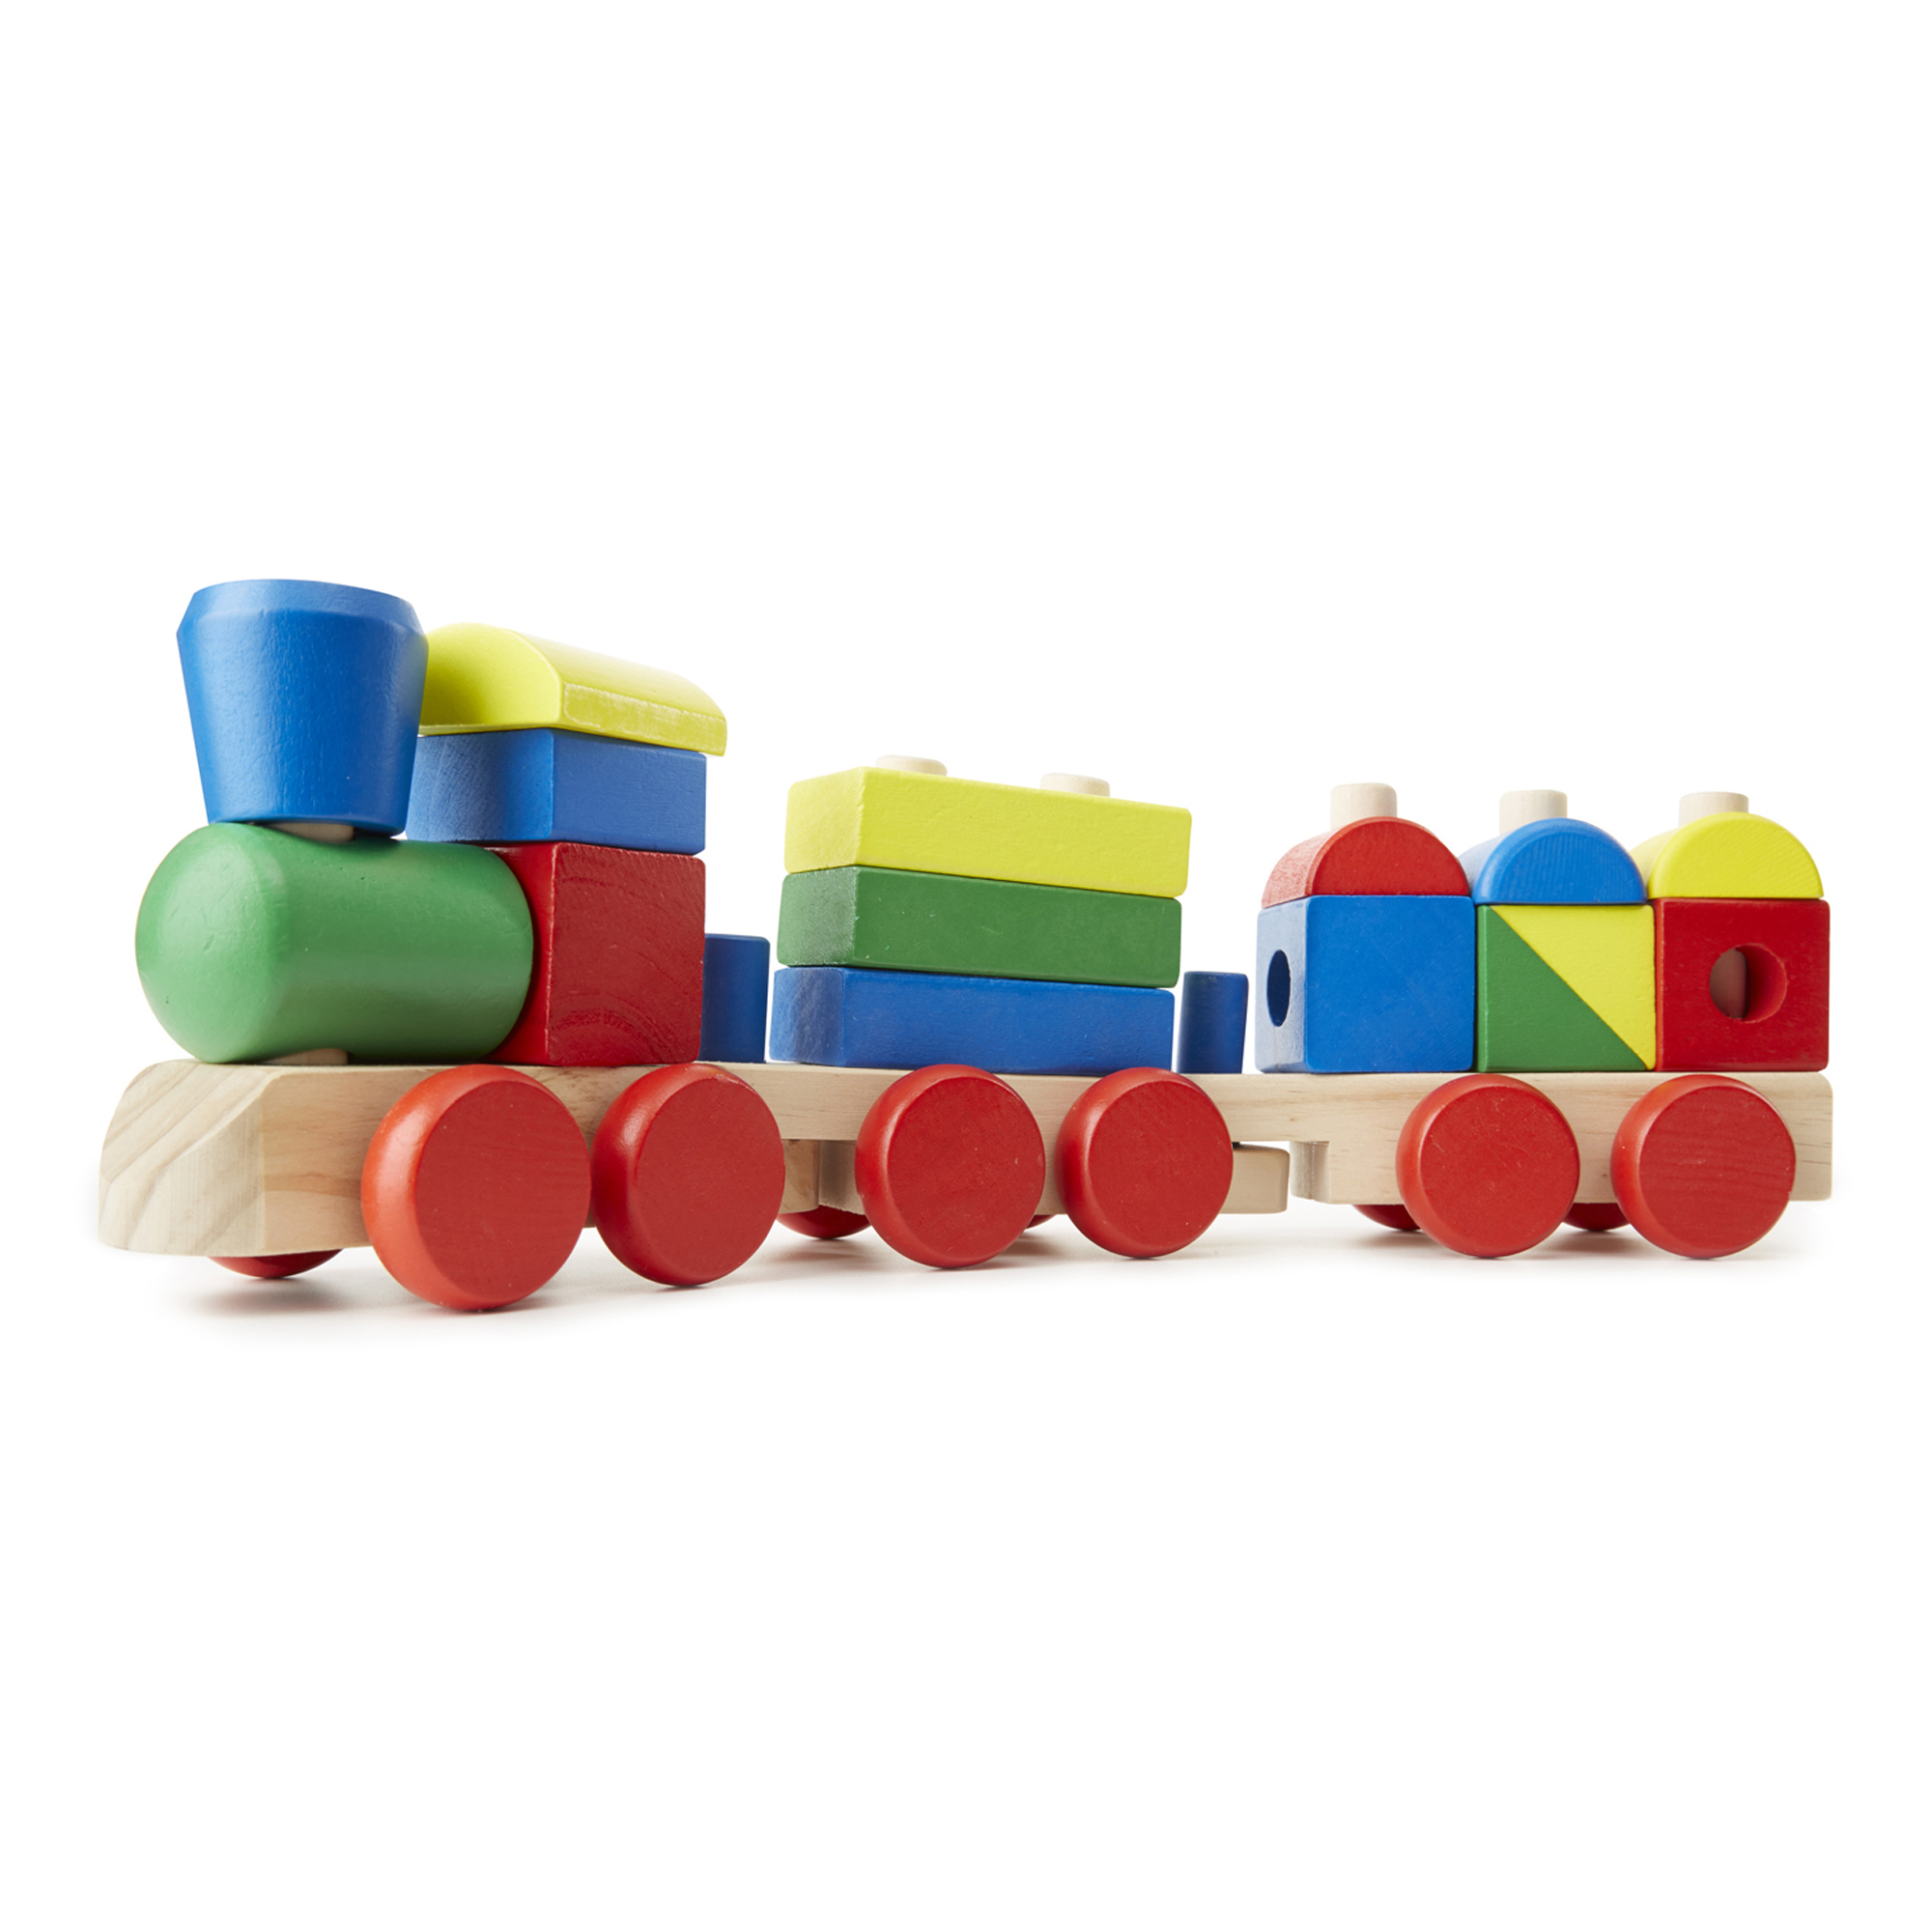 Melissa Doug Stacking Train Classic Wooden Toddler Toy 18 Pcs Walmart Com